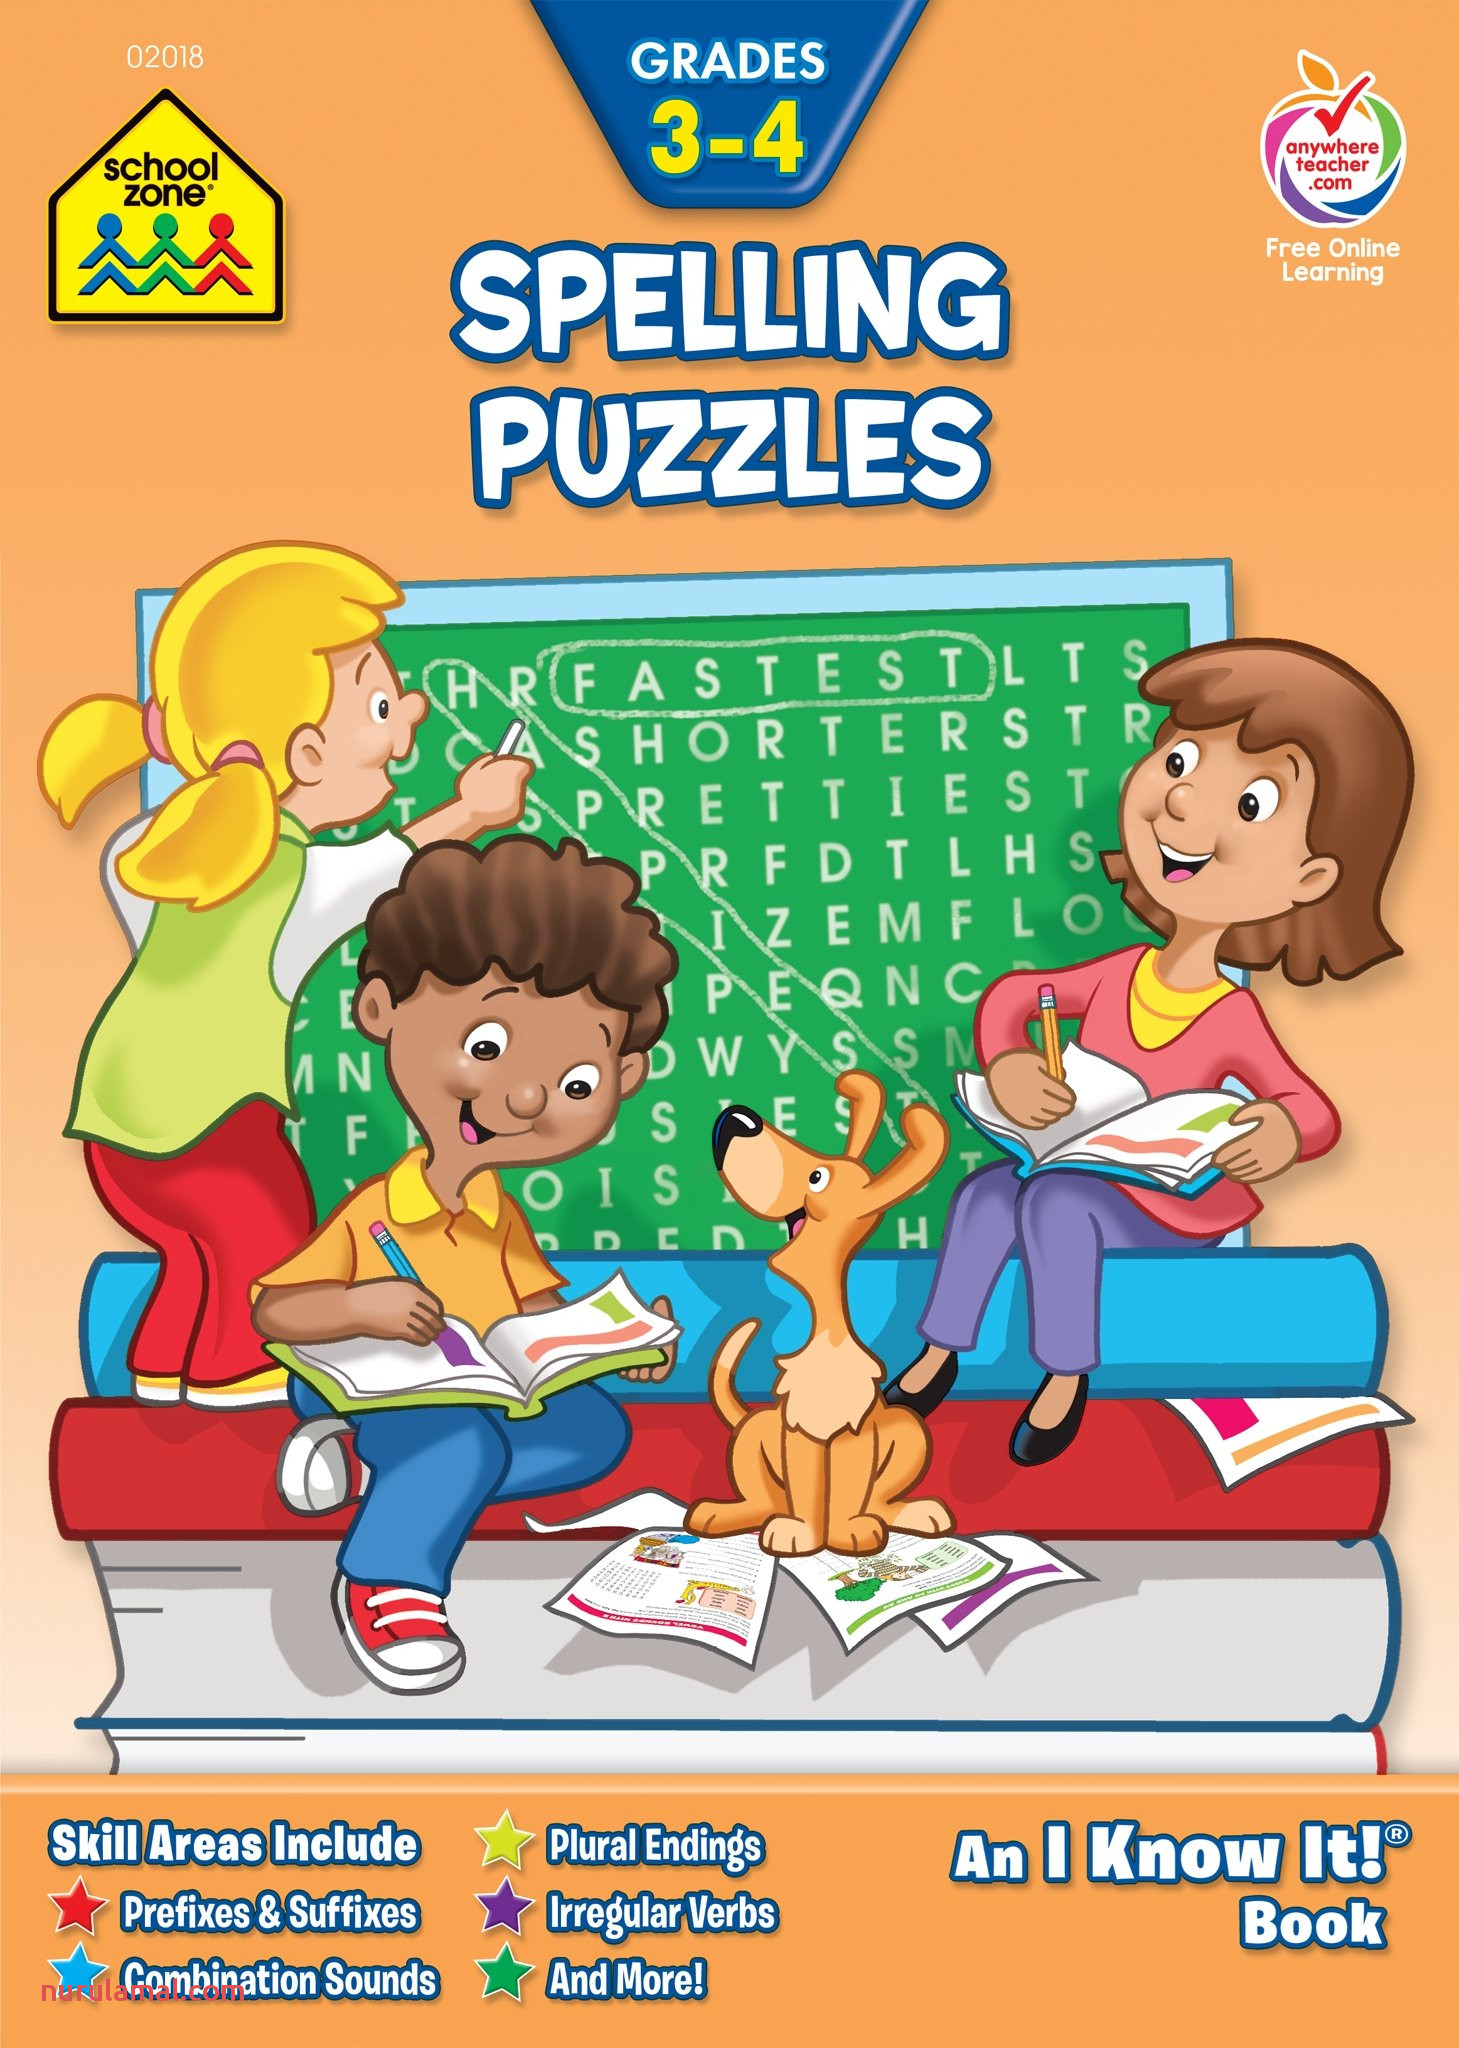 Spelling Puzzles Grade 3 4 An I Know It Books Amazon